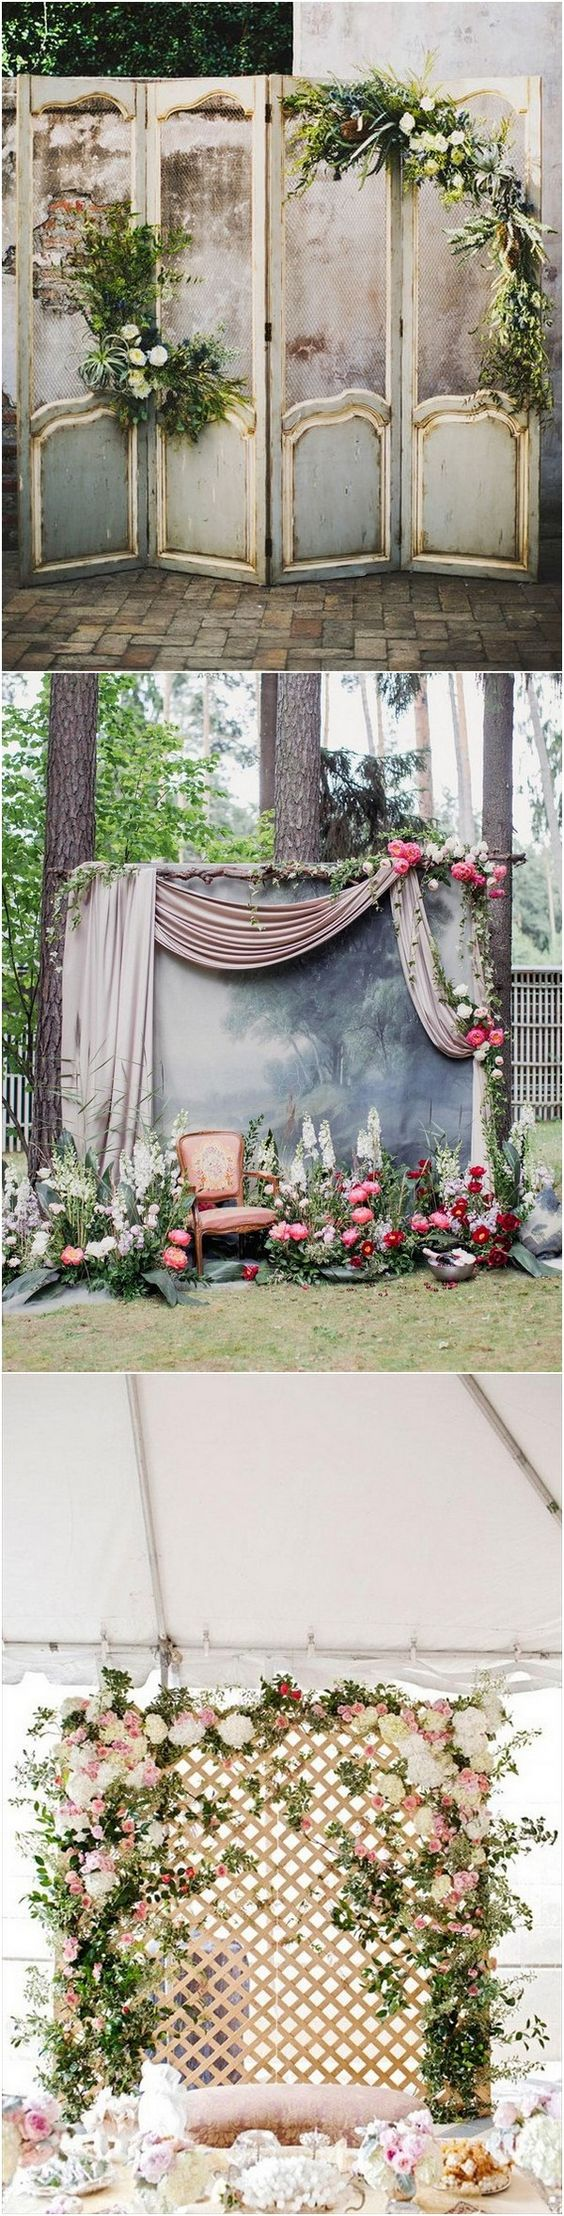 vintage door inspired wedding backdrop ideas with greenery decorations for your Luxury wedding Phuket